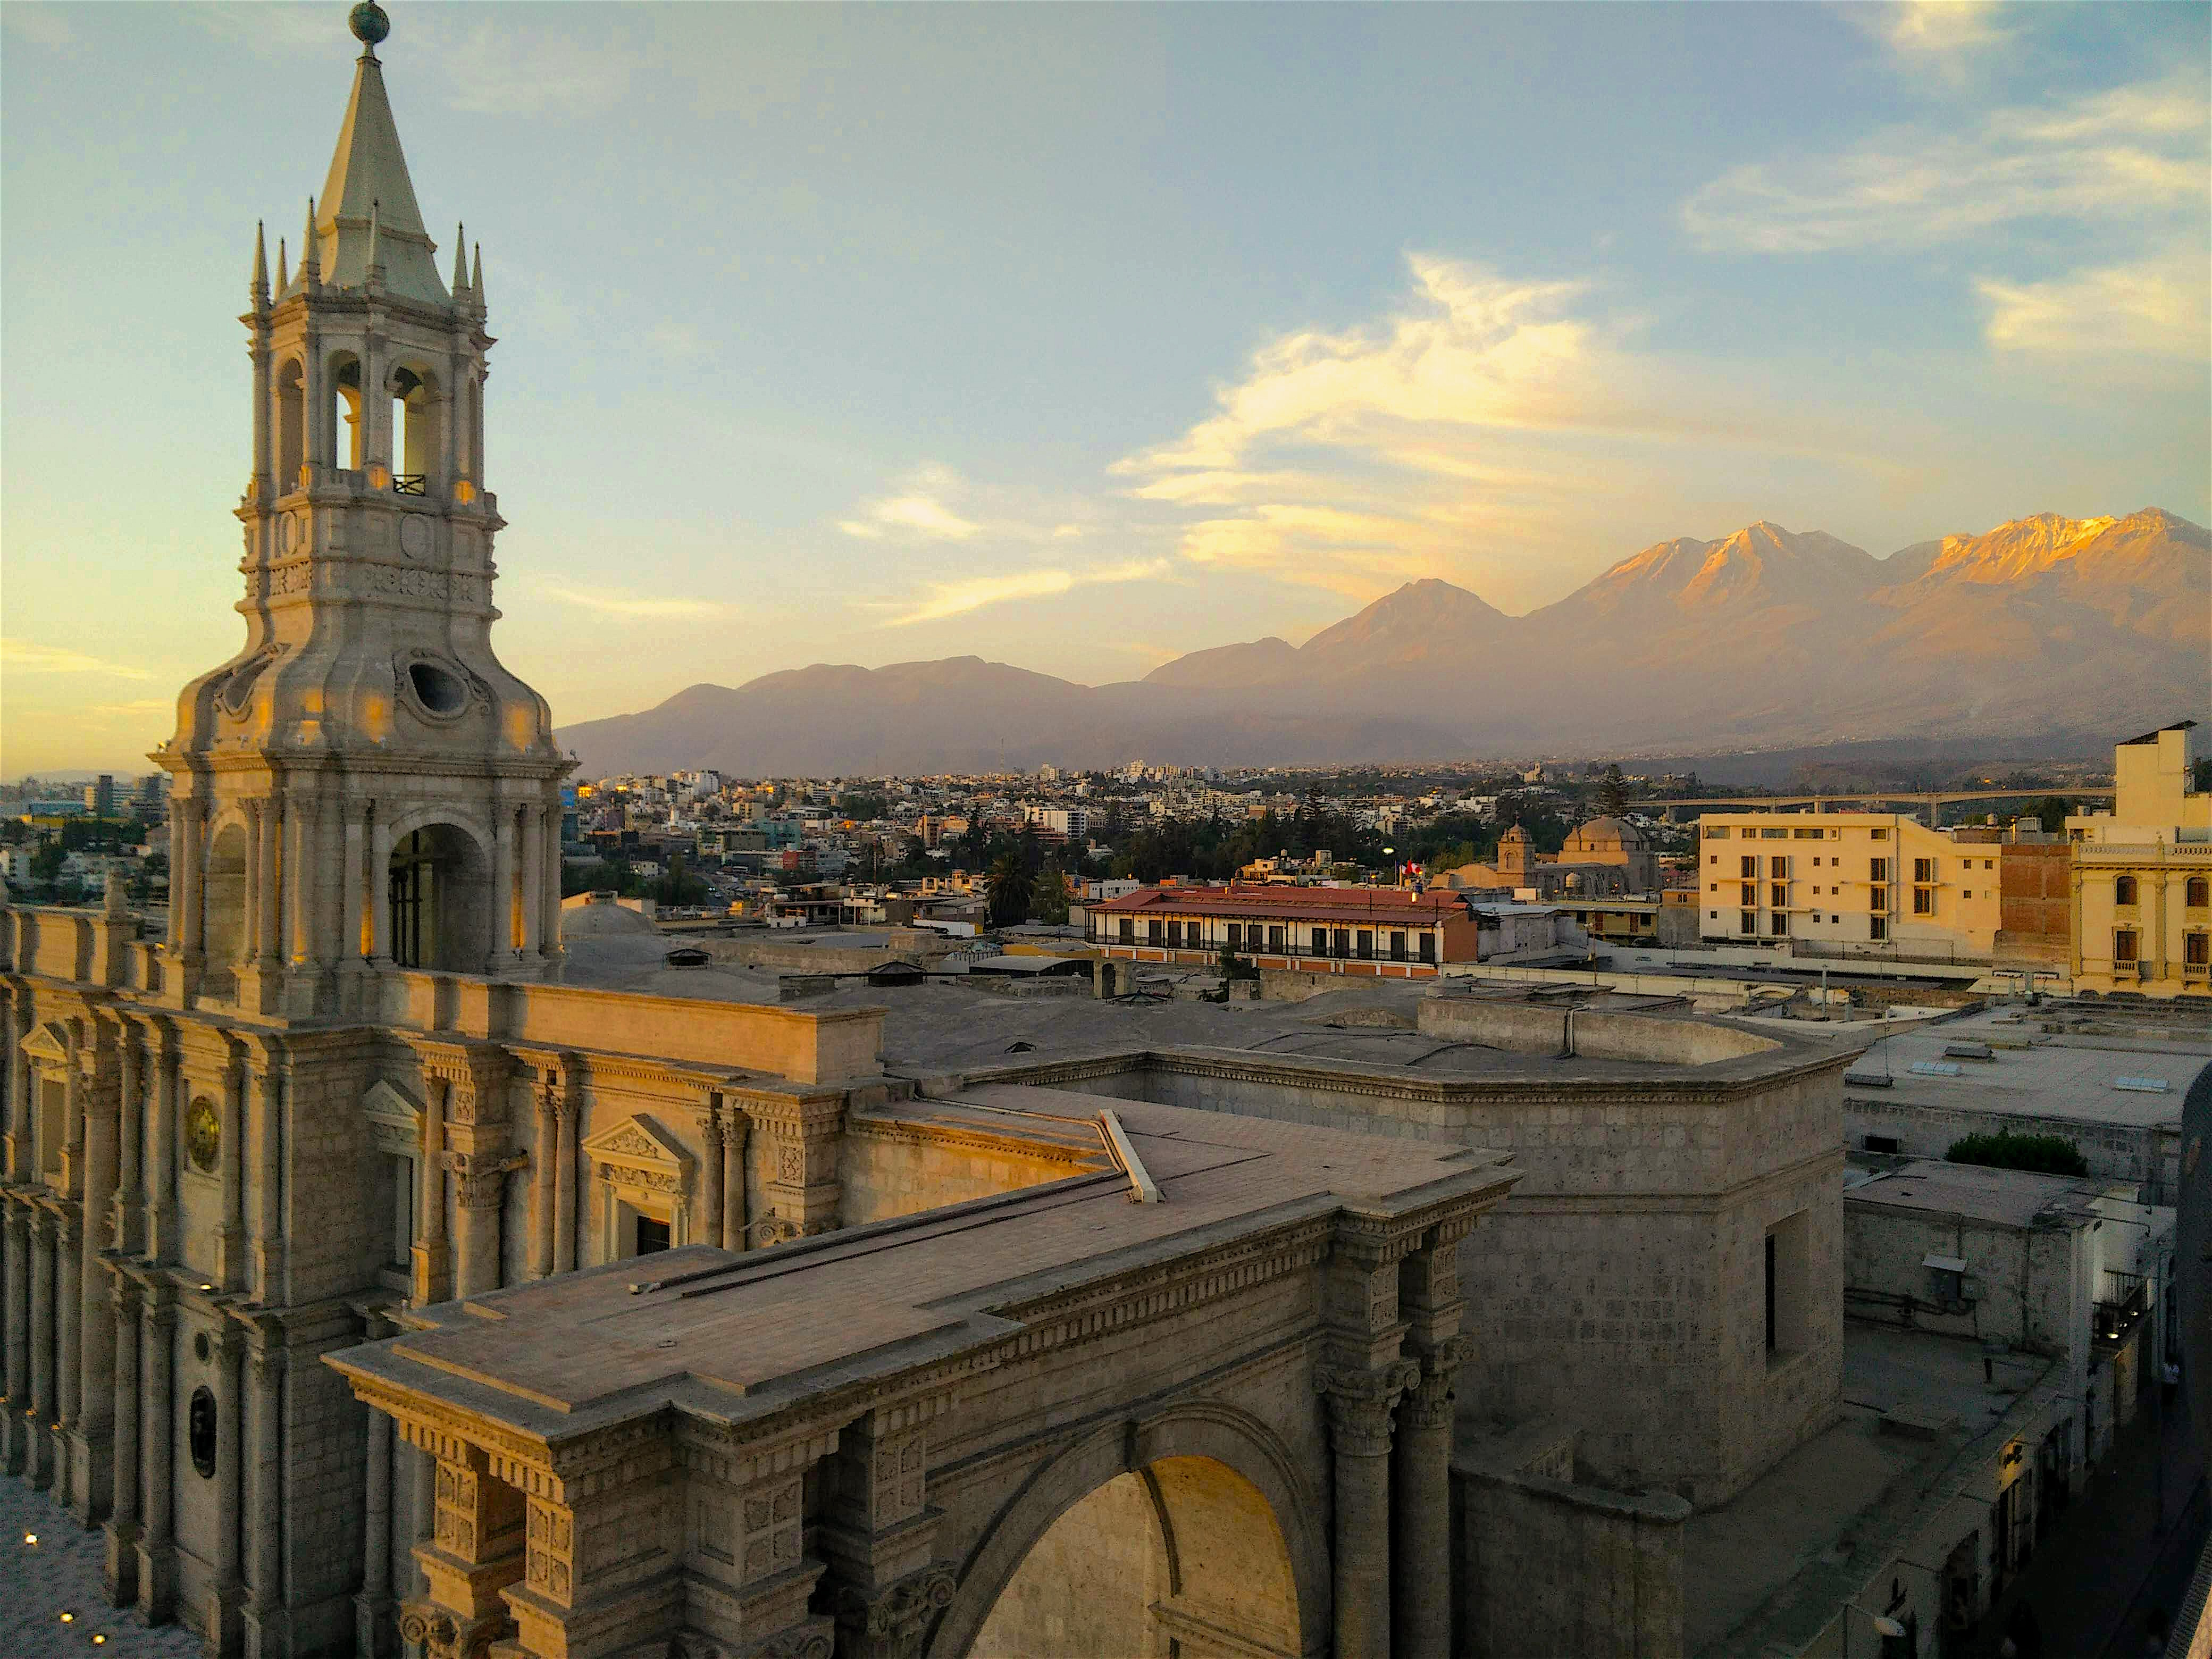 The view of the volcanoes behind the Plaza de Armas in Areuipa